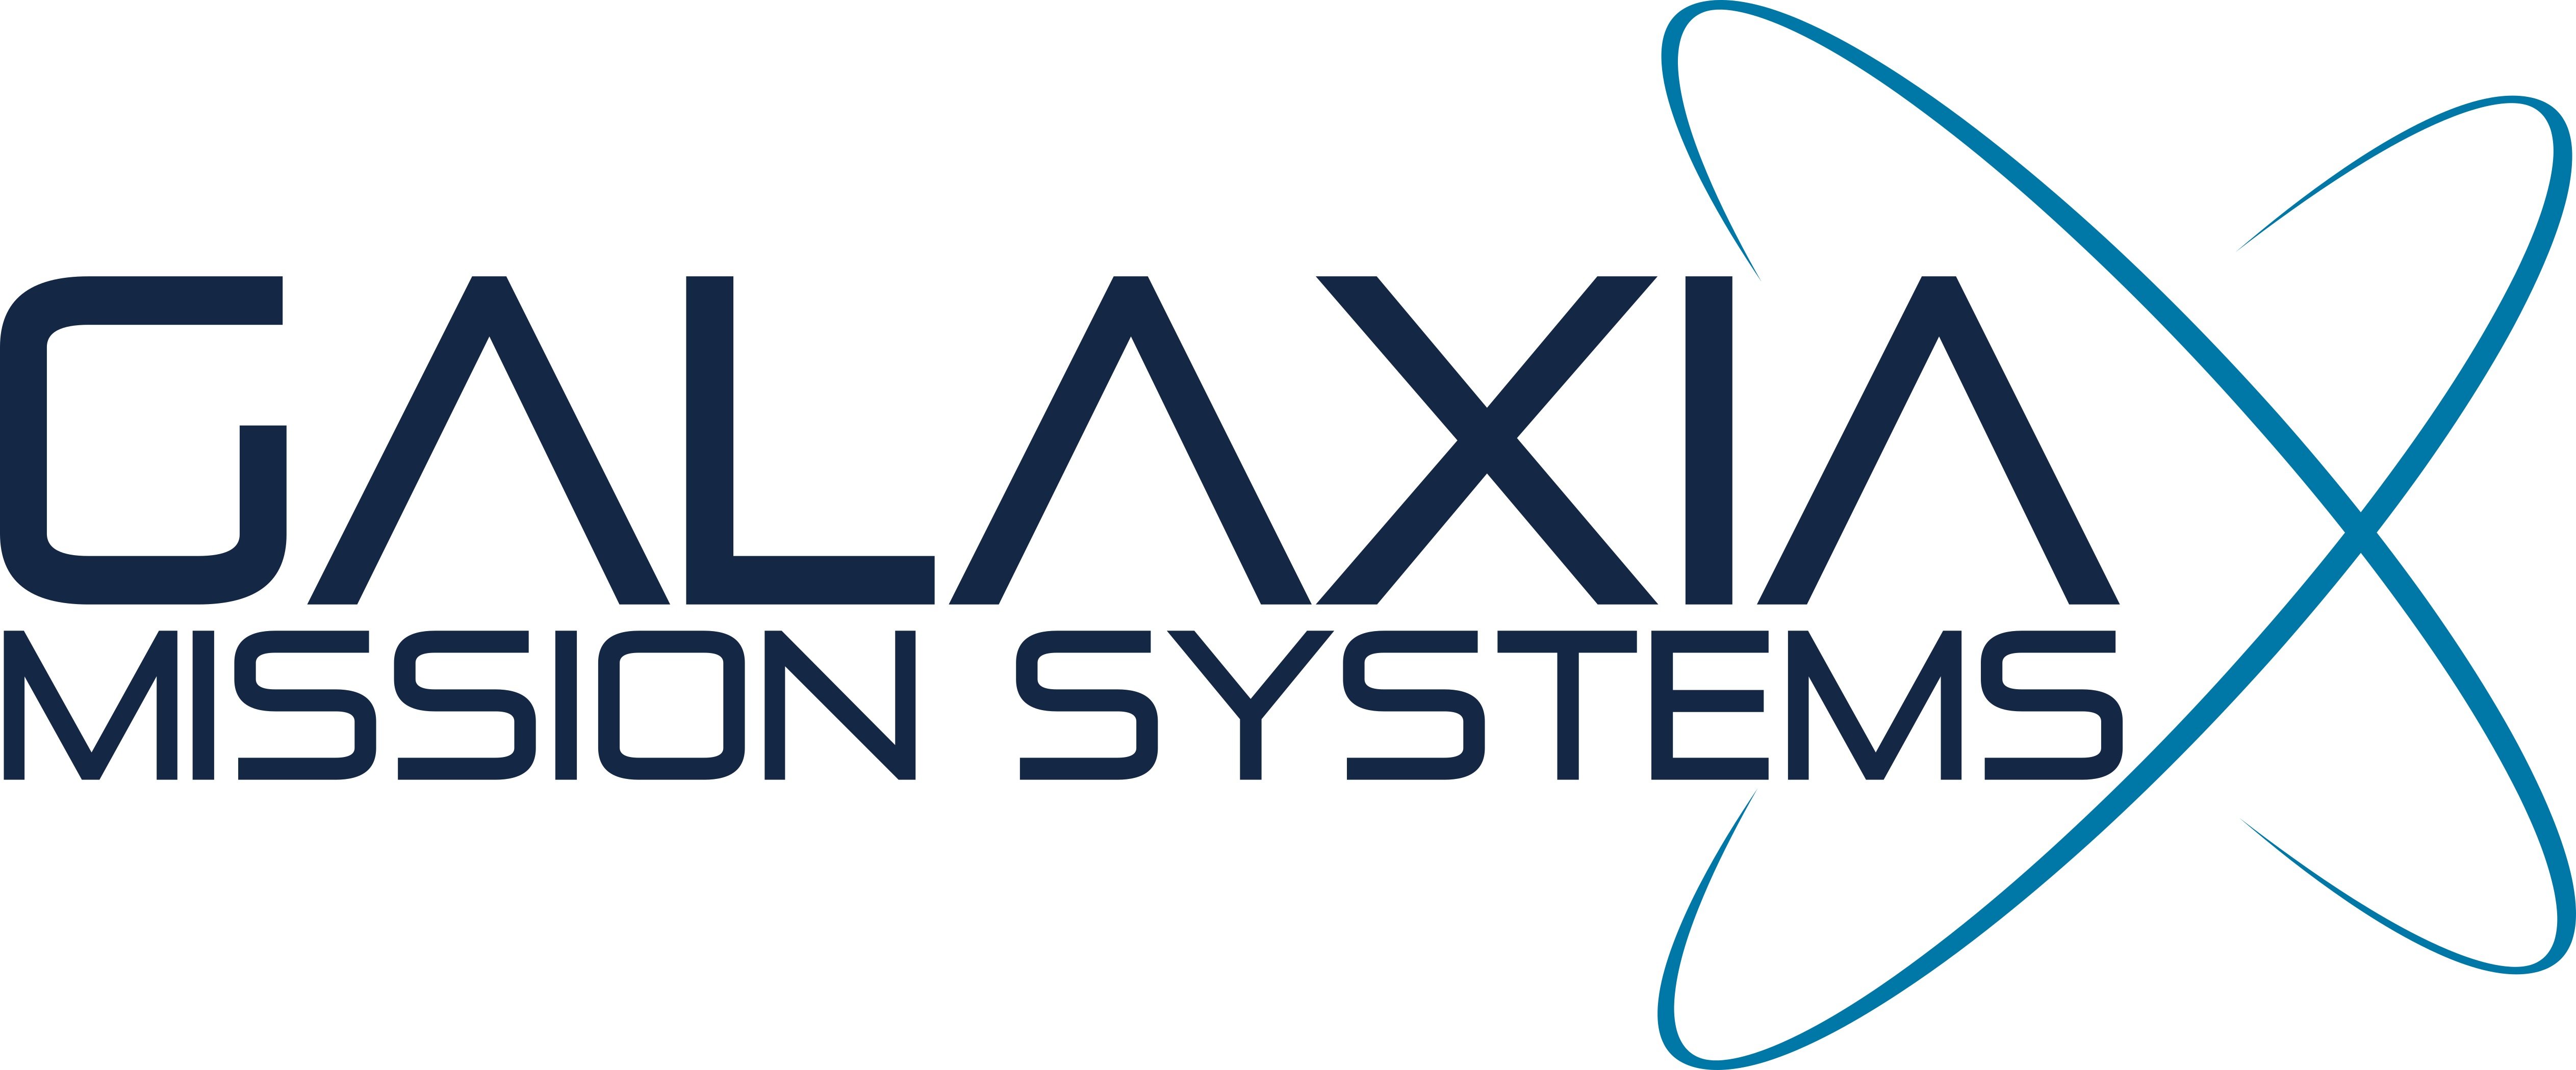 GALAXIA Mission Systems logo